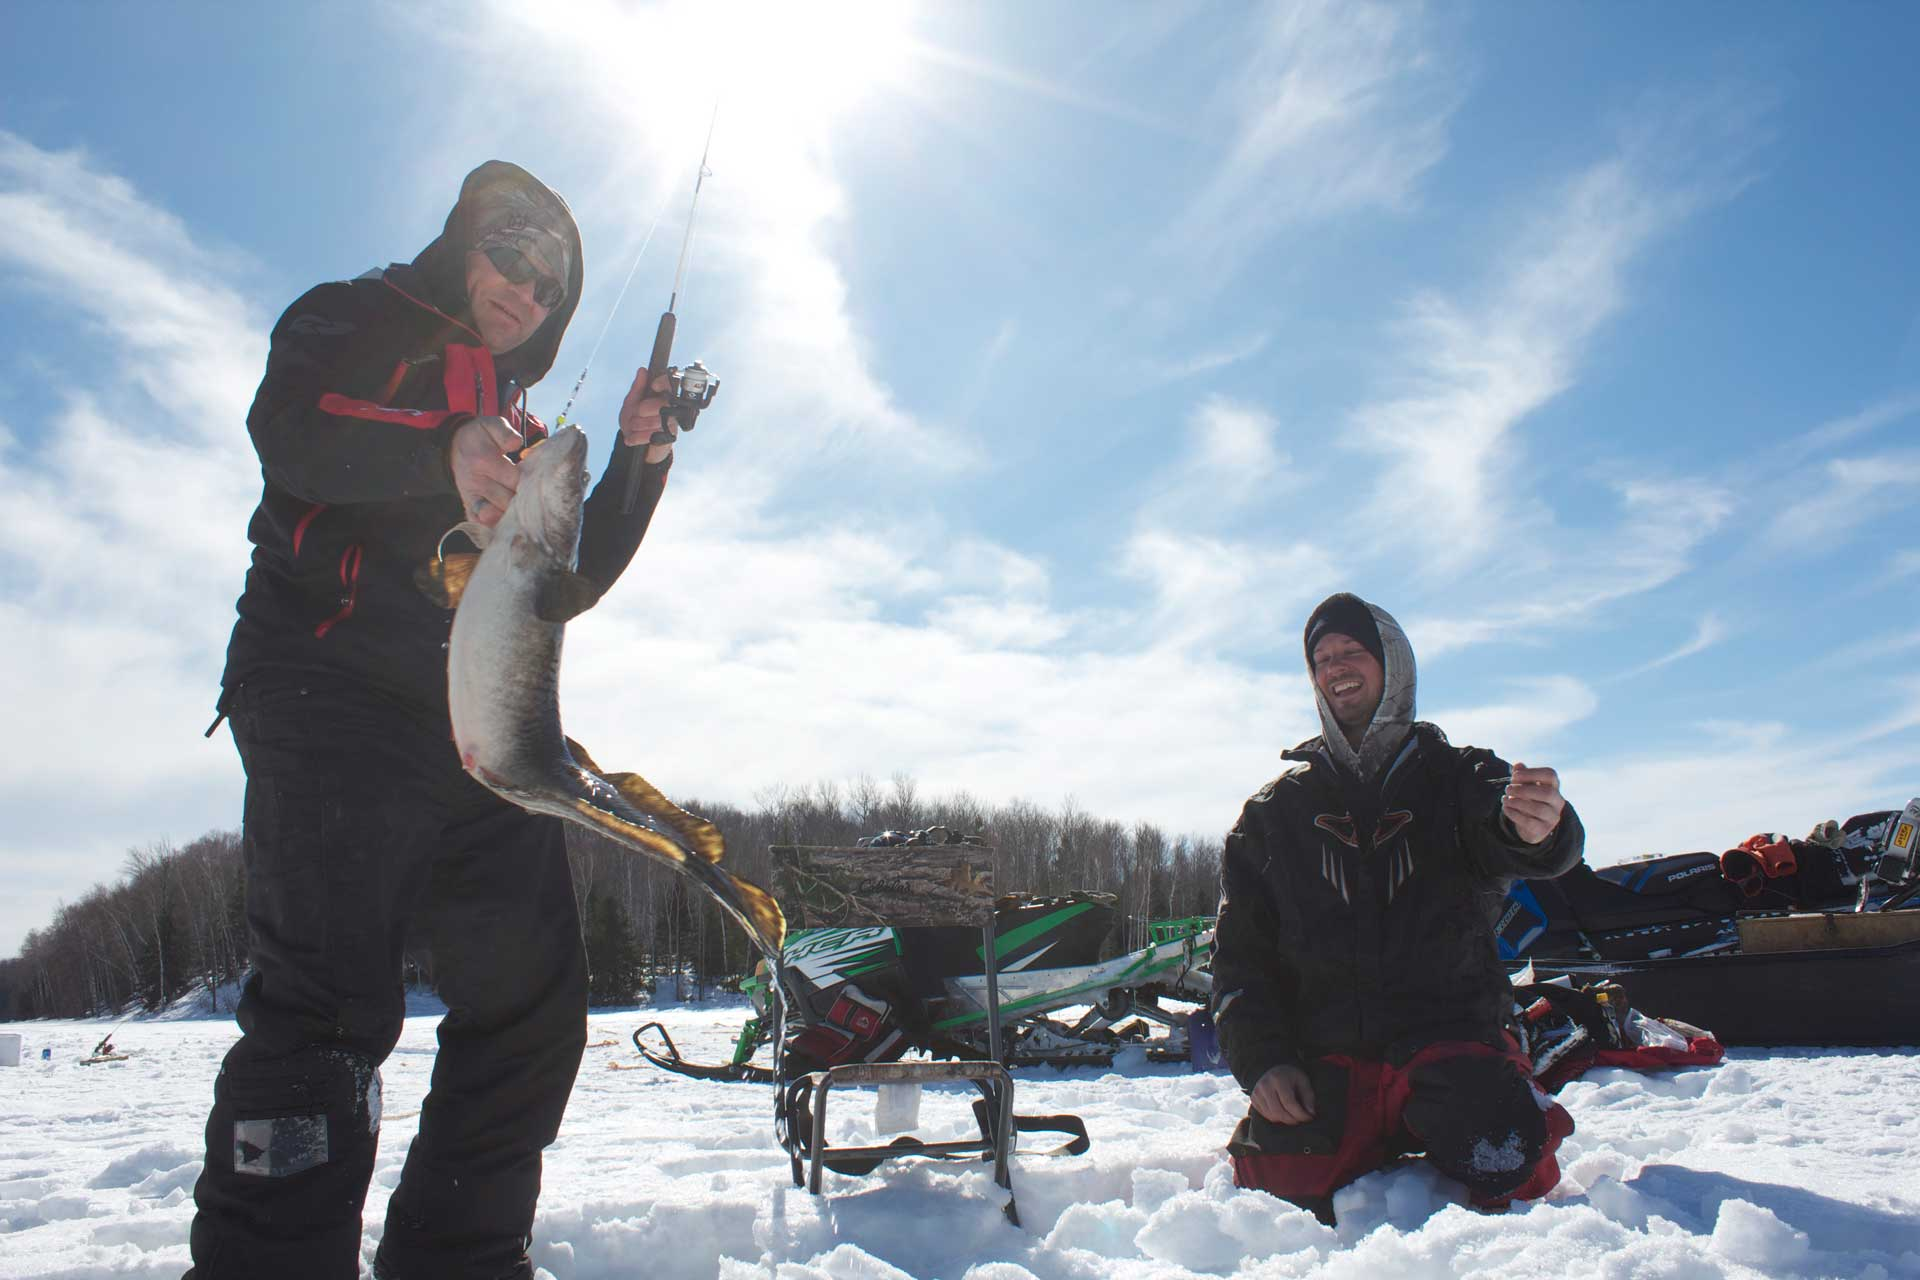 Two men ice fishing in snow with snowmobiles behind them. The man on the left has caught a fish. Both men are smiling.